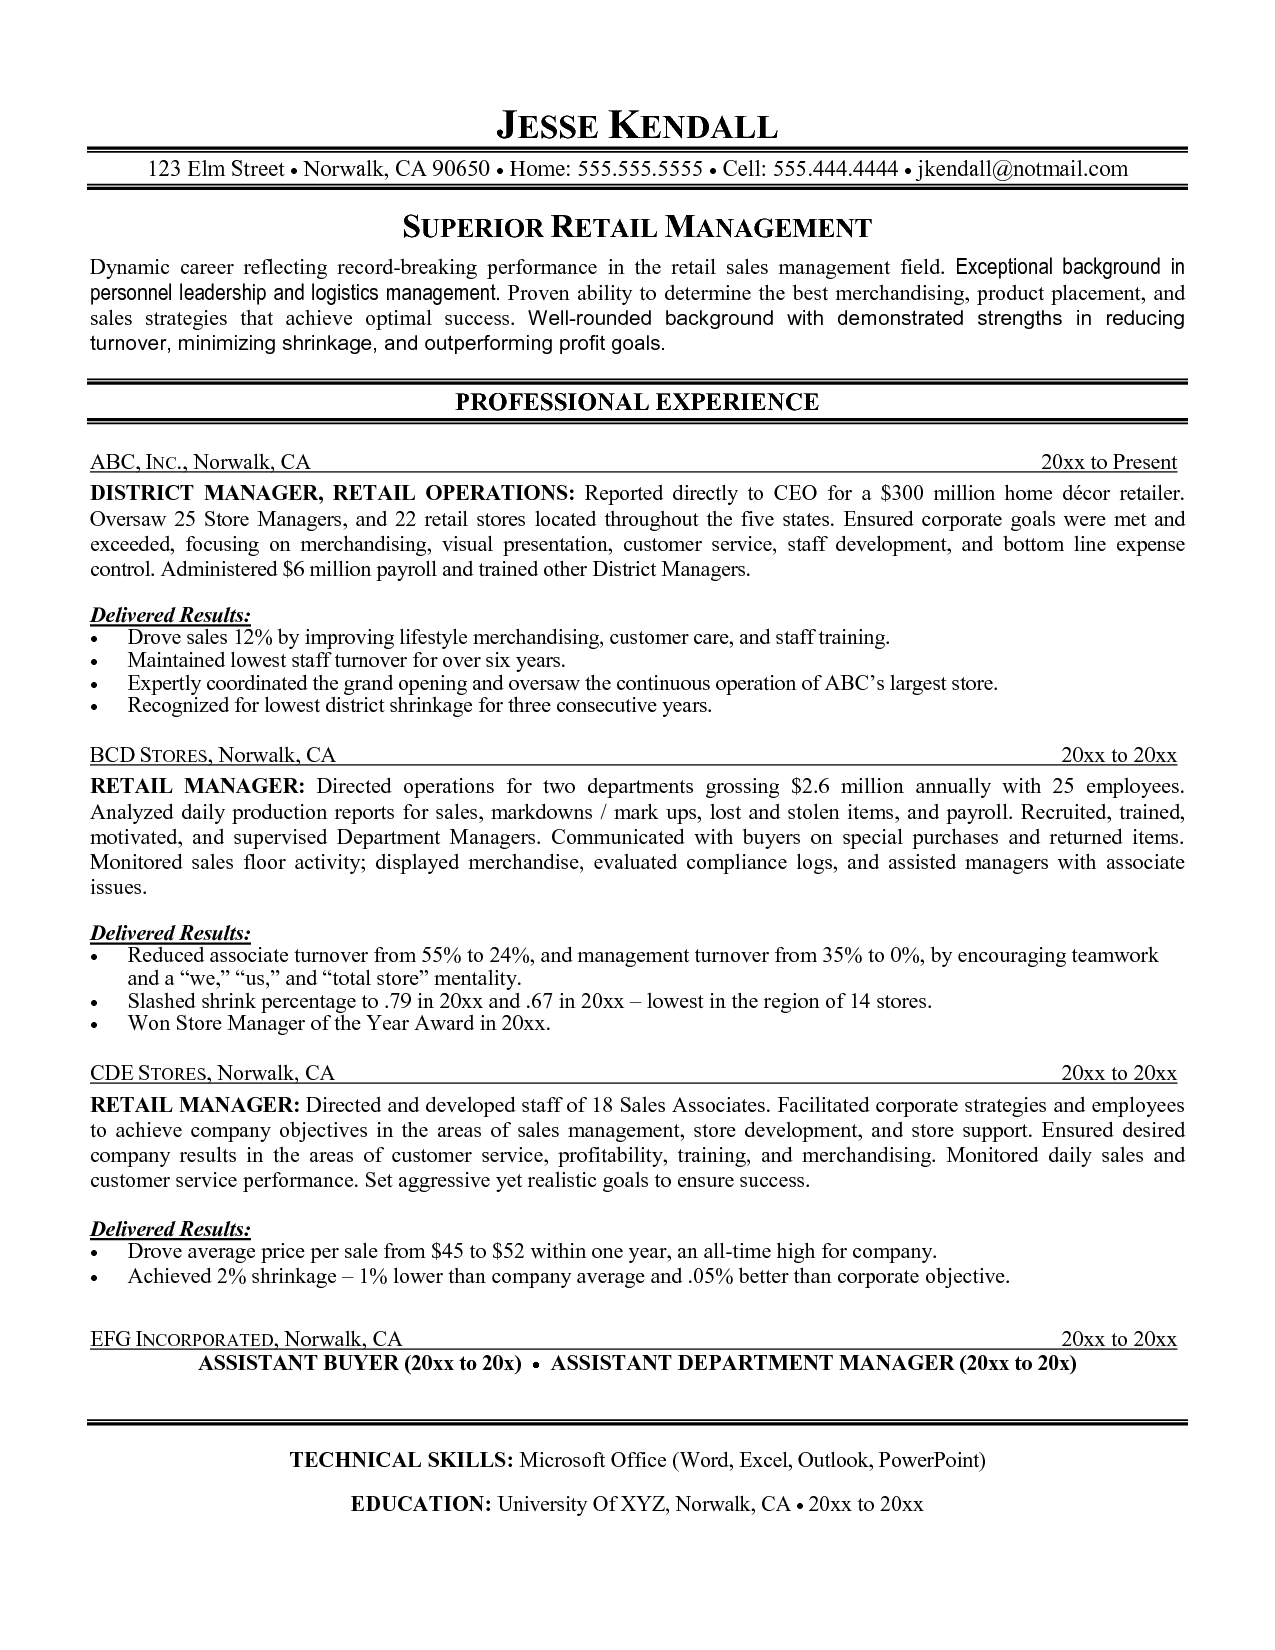 sample resume for assistant manager in retail - retail management resume examples retail resume objective